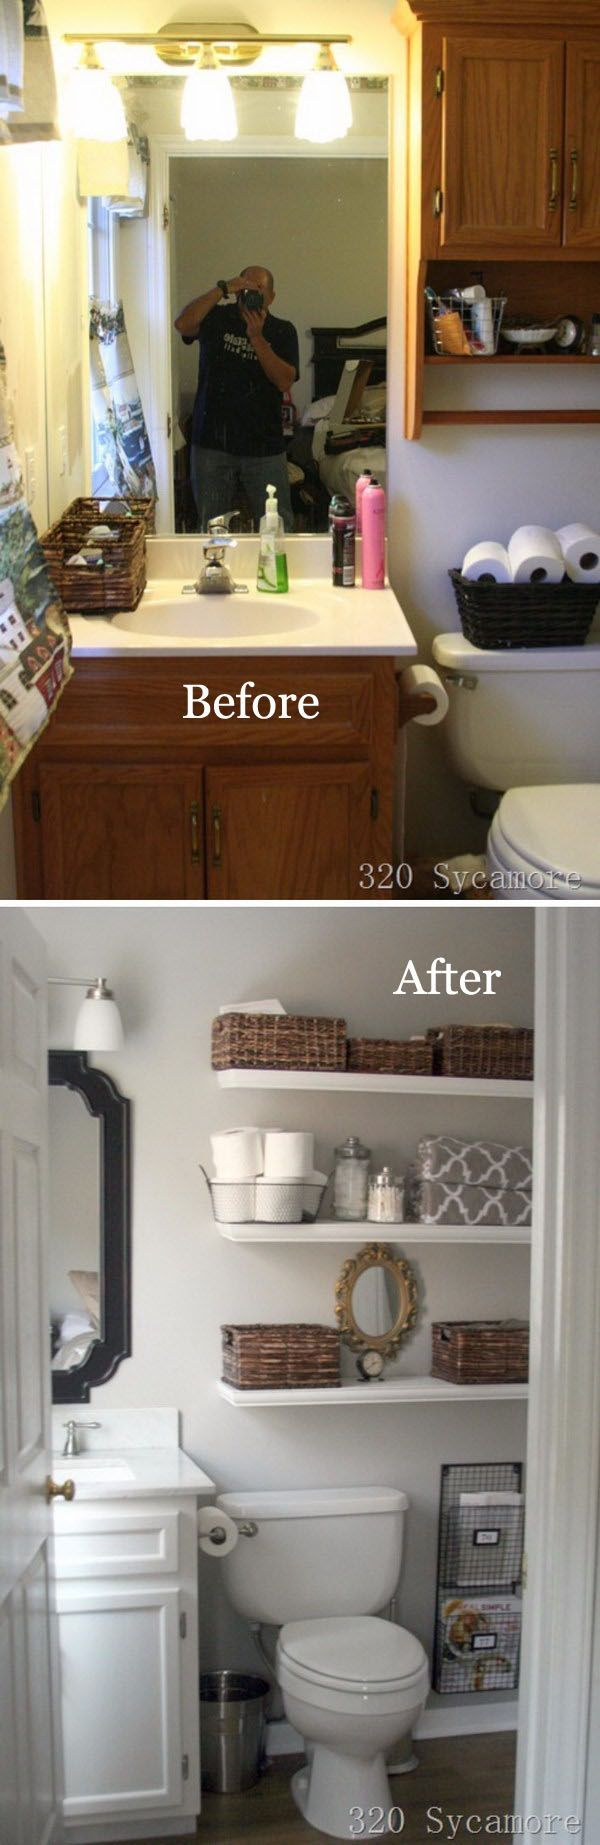 Bathroom decor ideas pictures - Before And After 20 Awesome Bathroom Makeovers